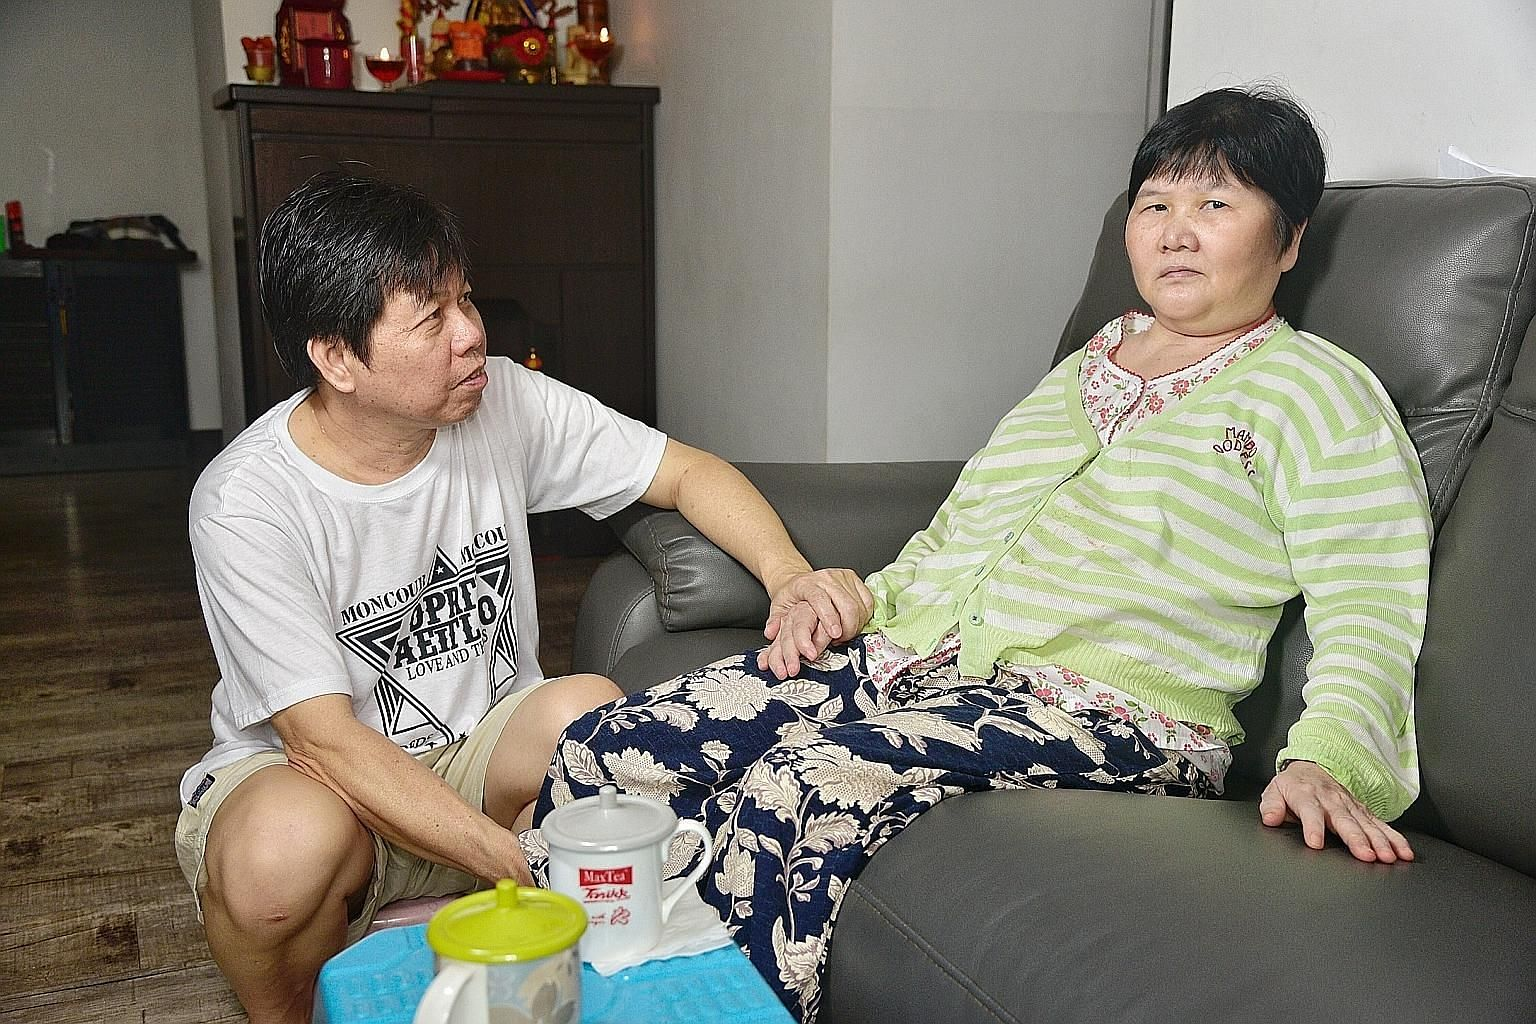 Madam Ang Liu Kiow at home yesterday with her husband, Mr Leong Loon Wah, who says her condition has improved since the 2016 crash, which left her in a month-long coma.